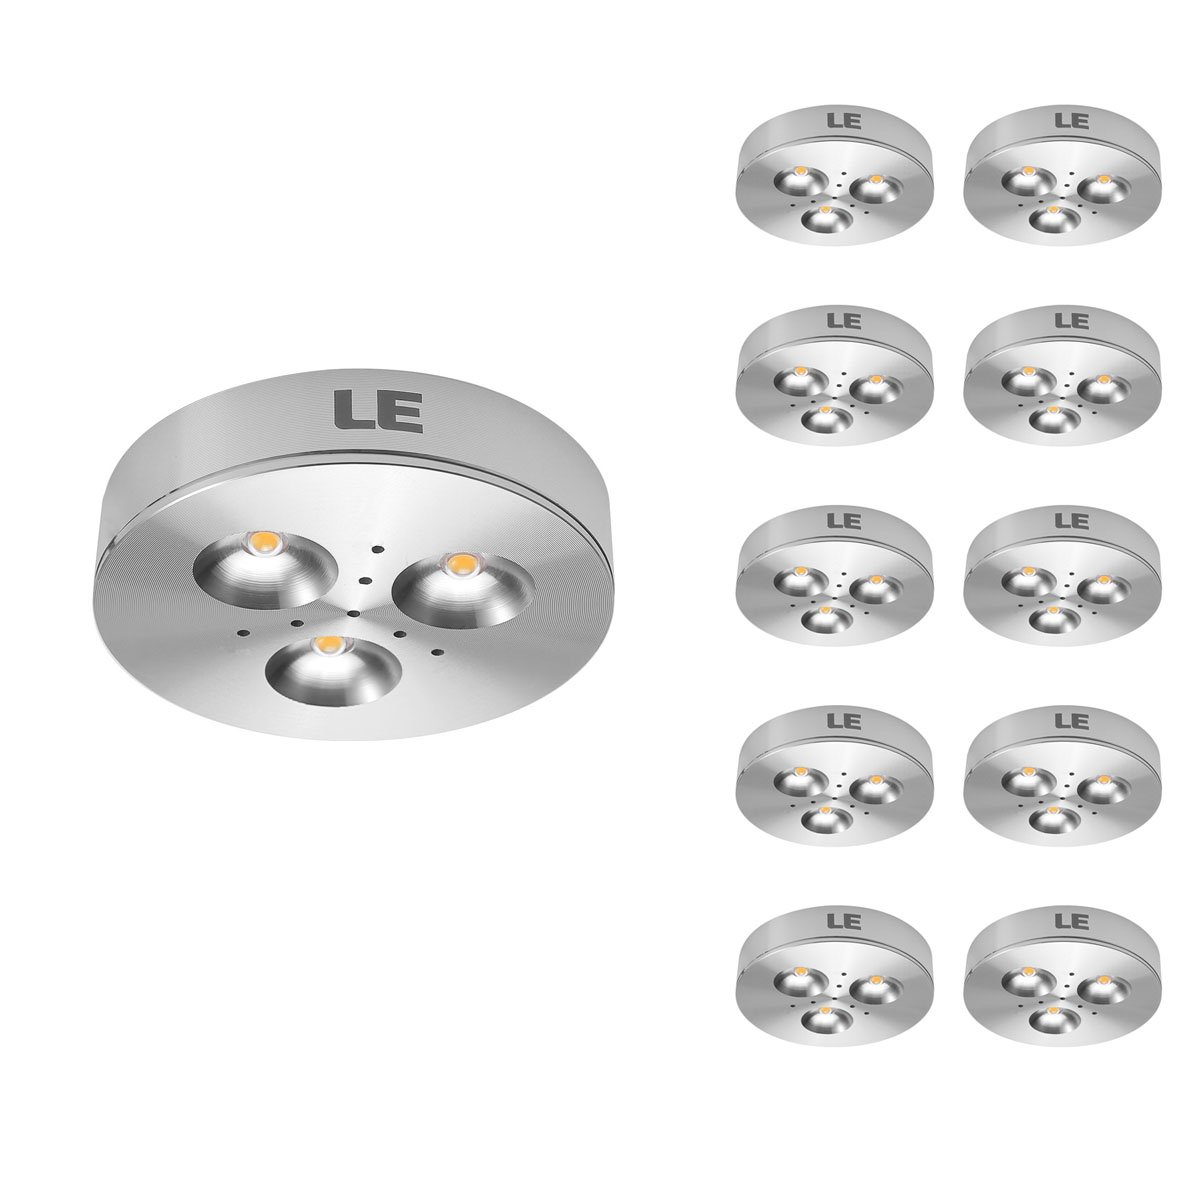 le 10 pack led under cabinet lighting puck lights 12v dc under counter lighting 25w halogen replacement 240lm warm white amazoncom cabinet lighting puck light